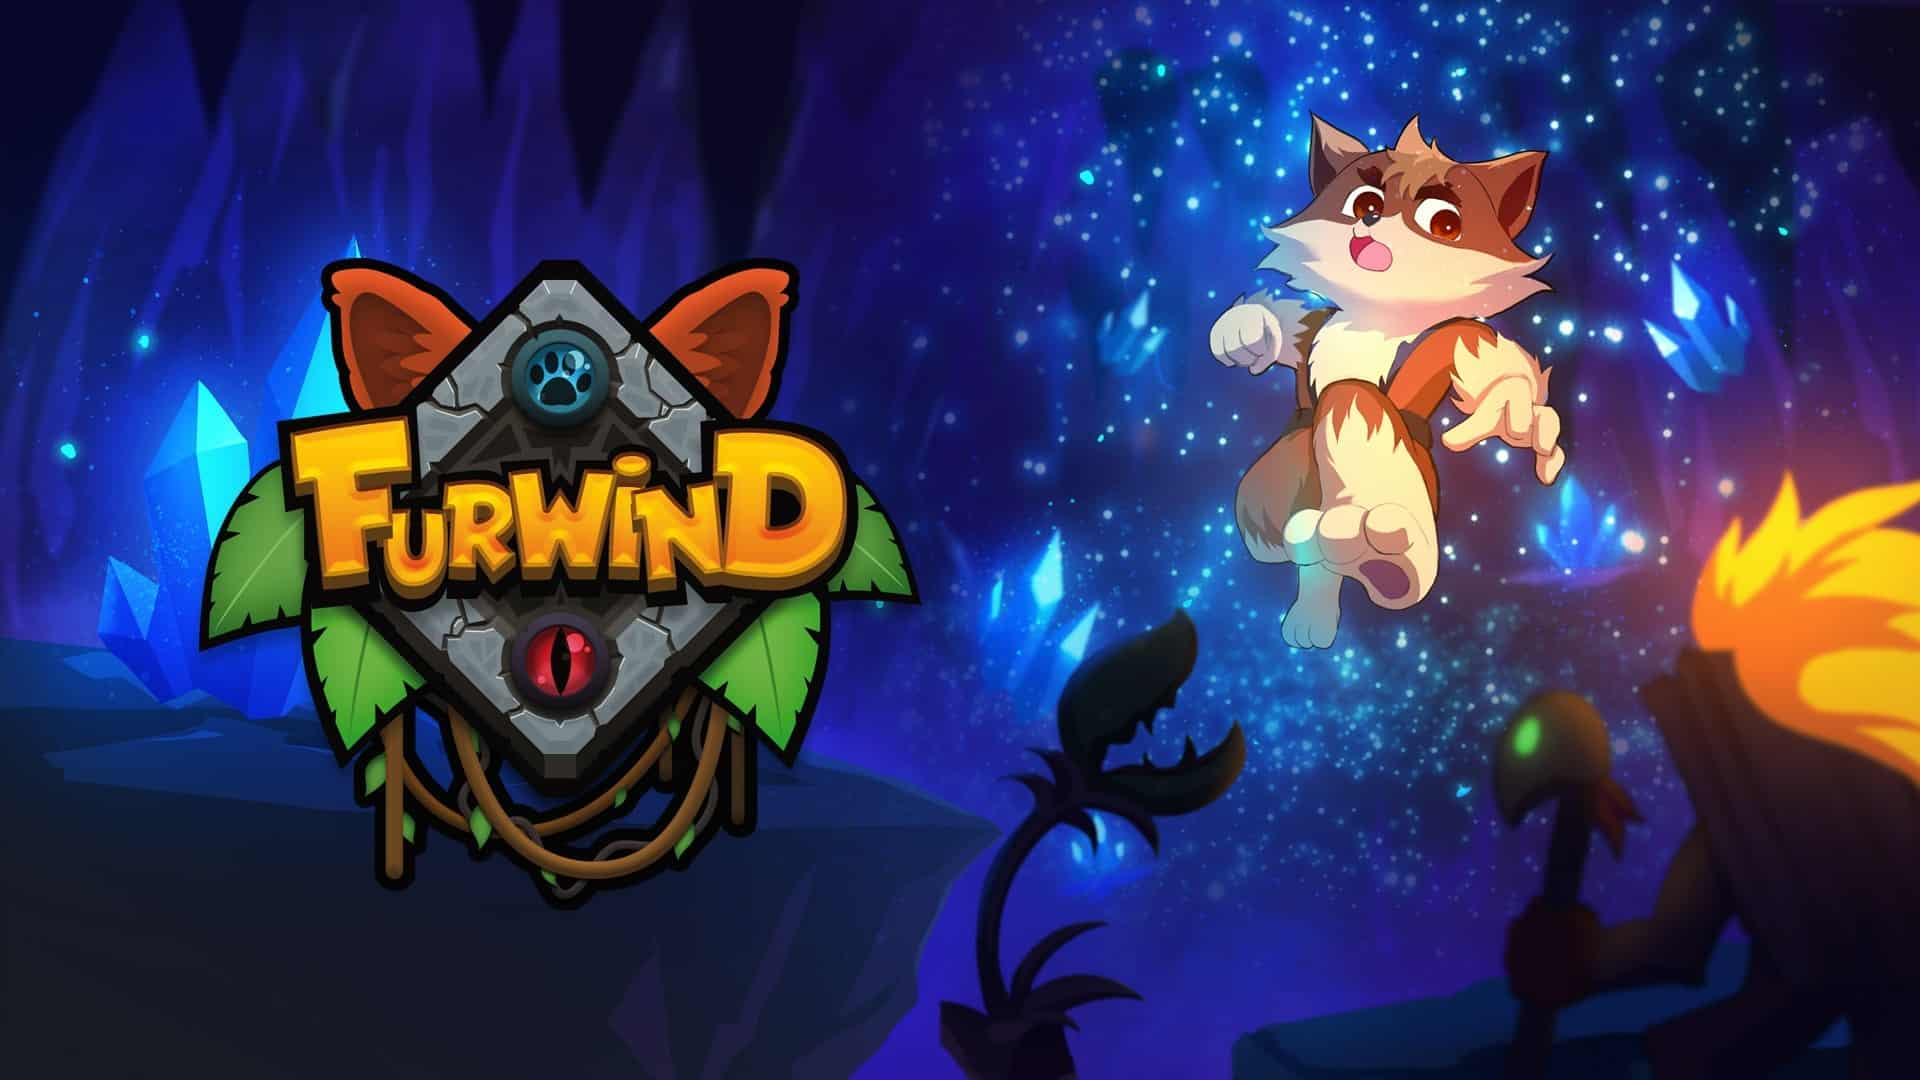 Furwind – Available Now For PS4, PSVITA And Nintendo Switch